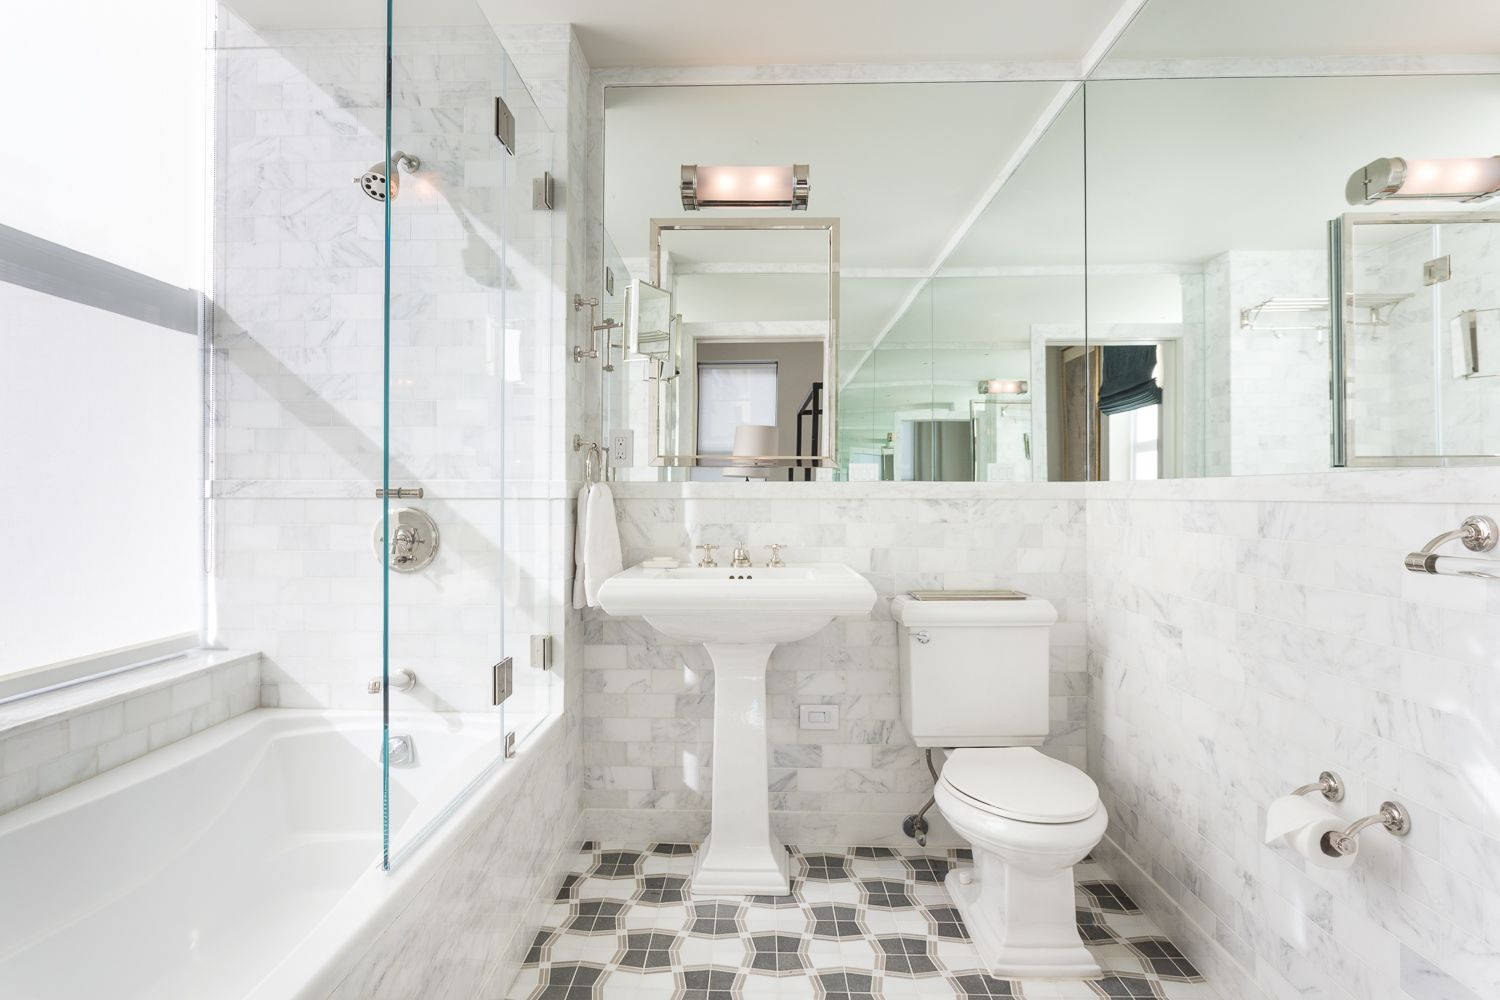 Top 10 Remodeling Shows | Tiles online, Stone tiles and Bath